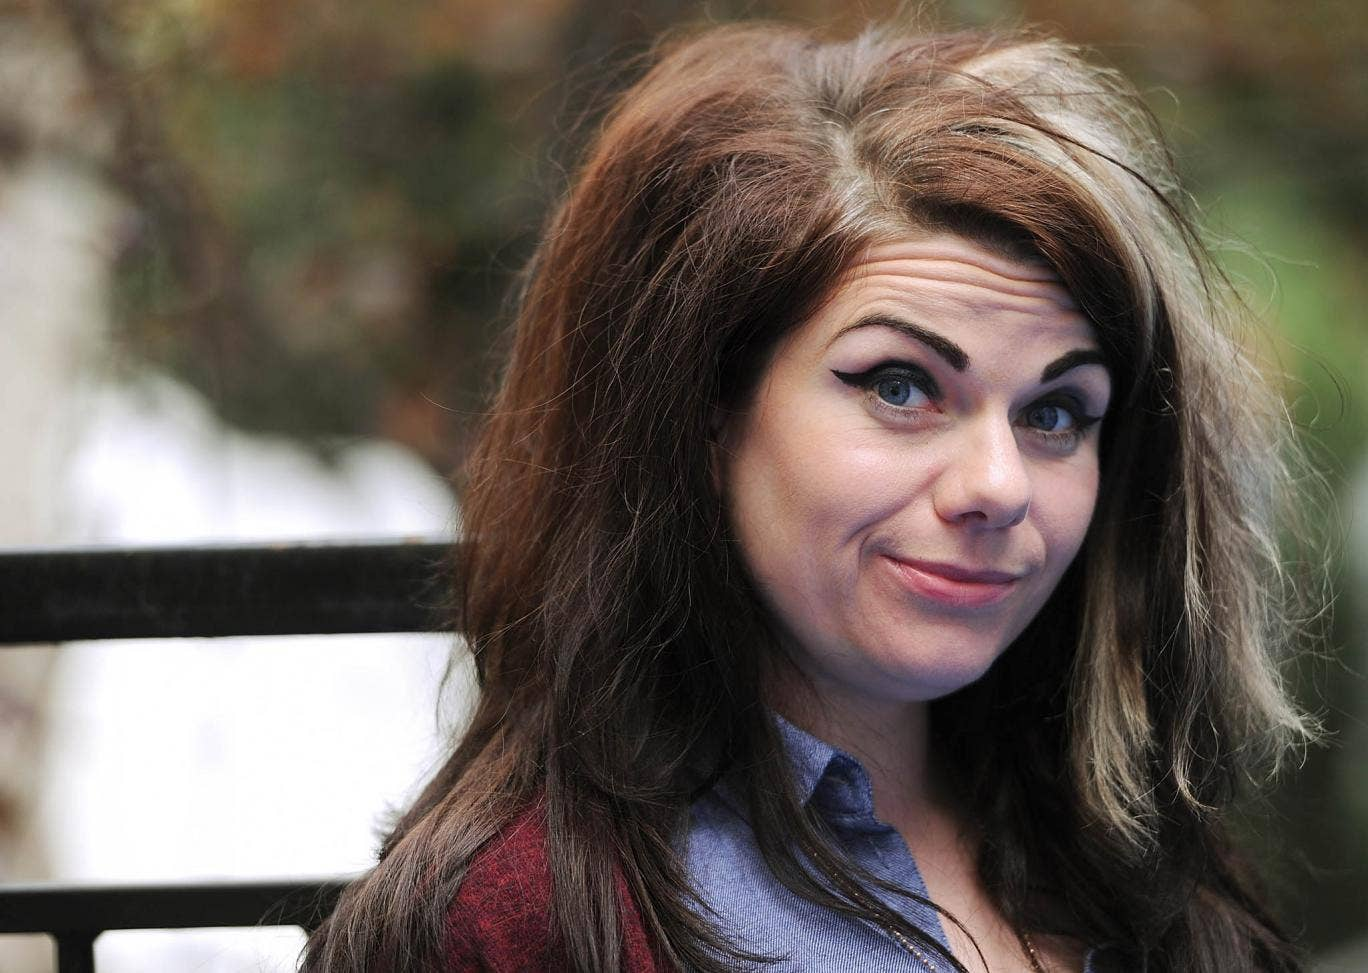 Columnist and writer Caitlin Moran